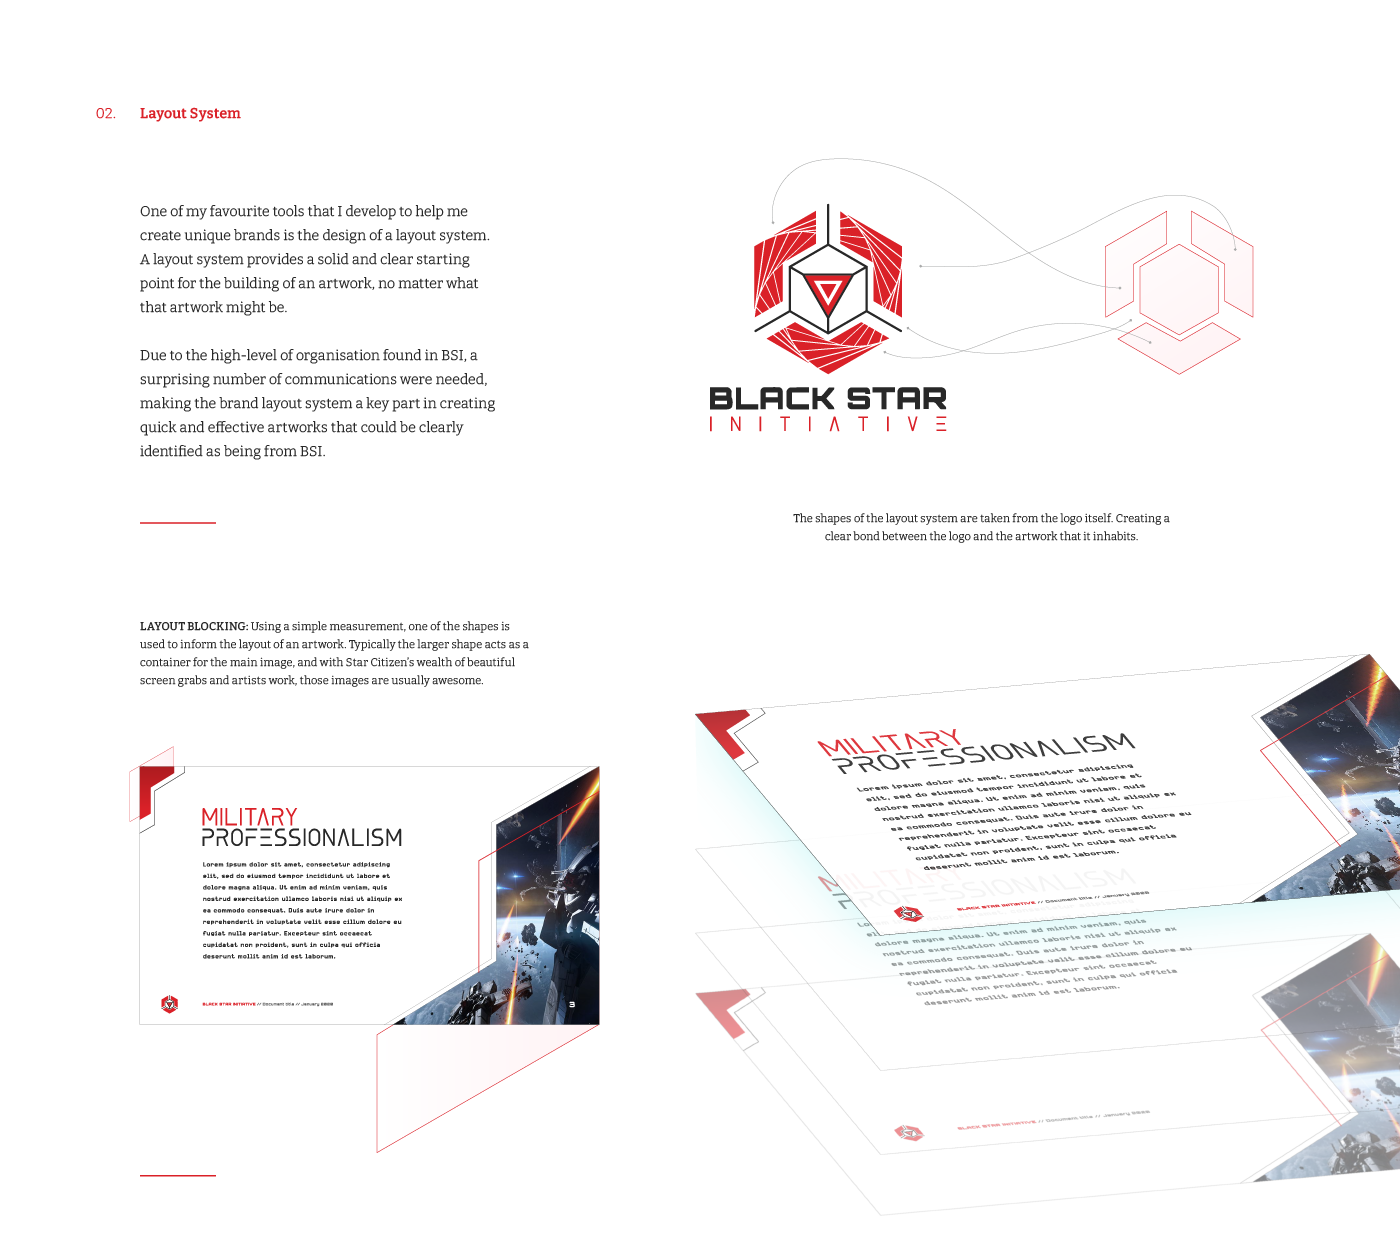 Explaining the layout system for the BSI brand